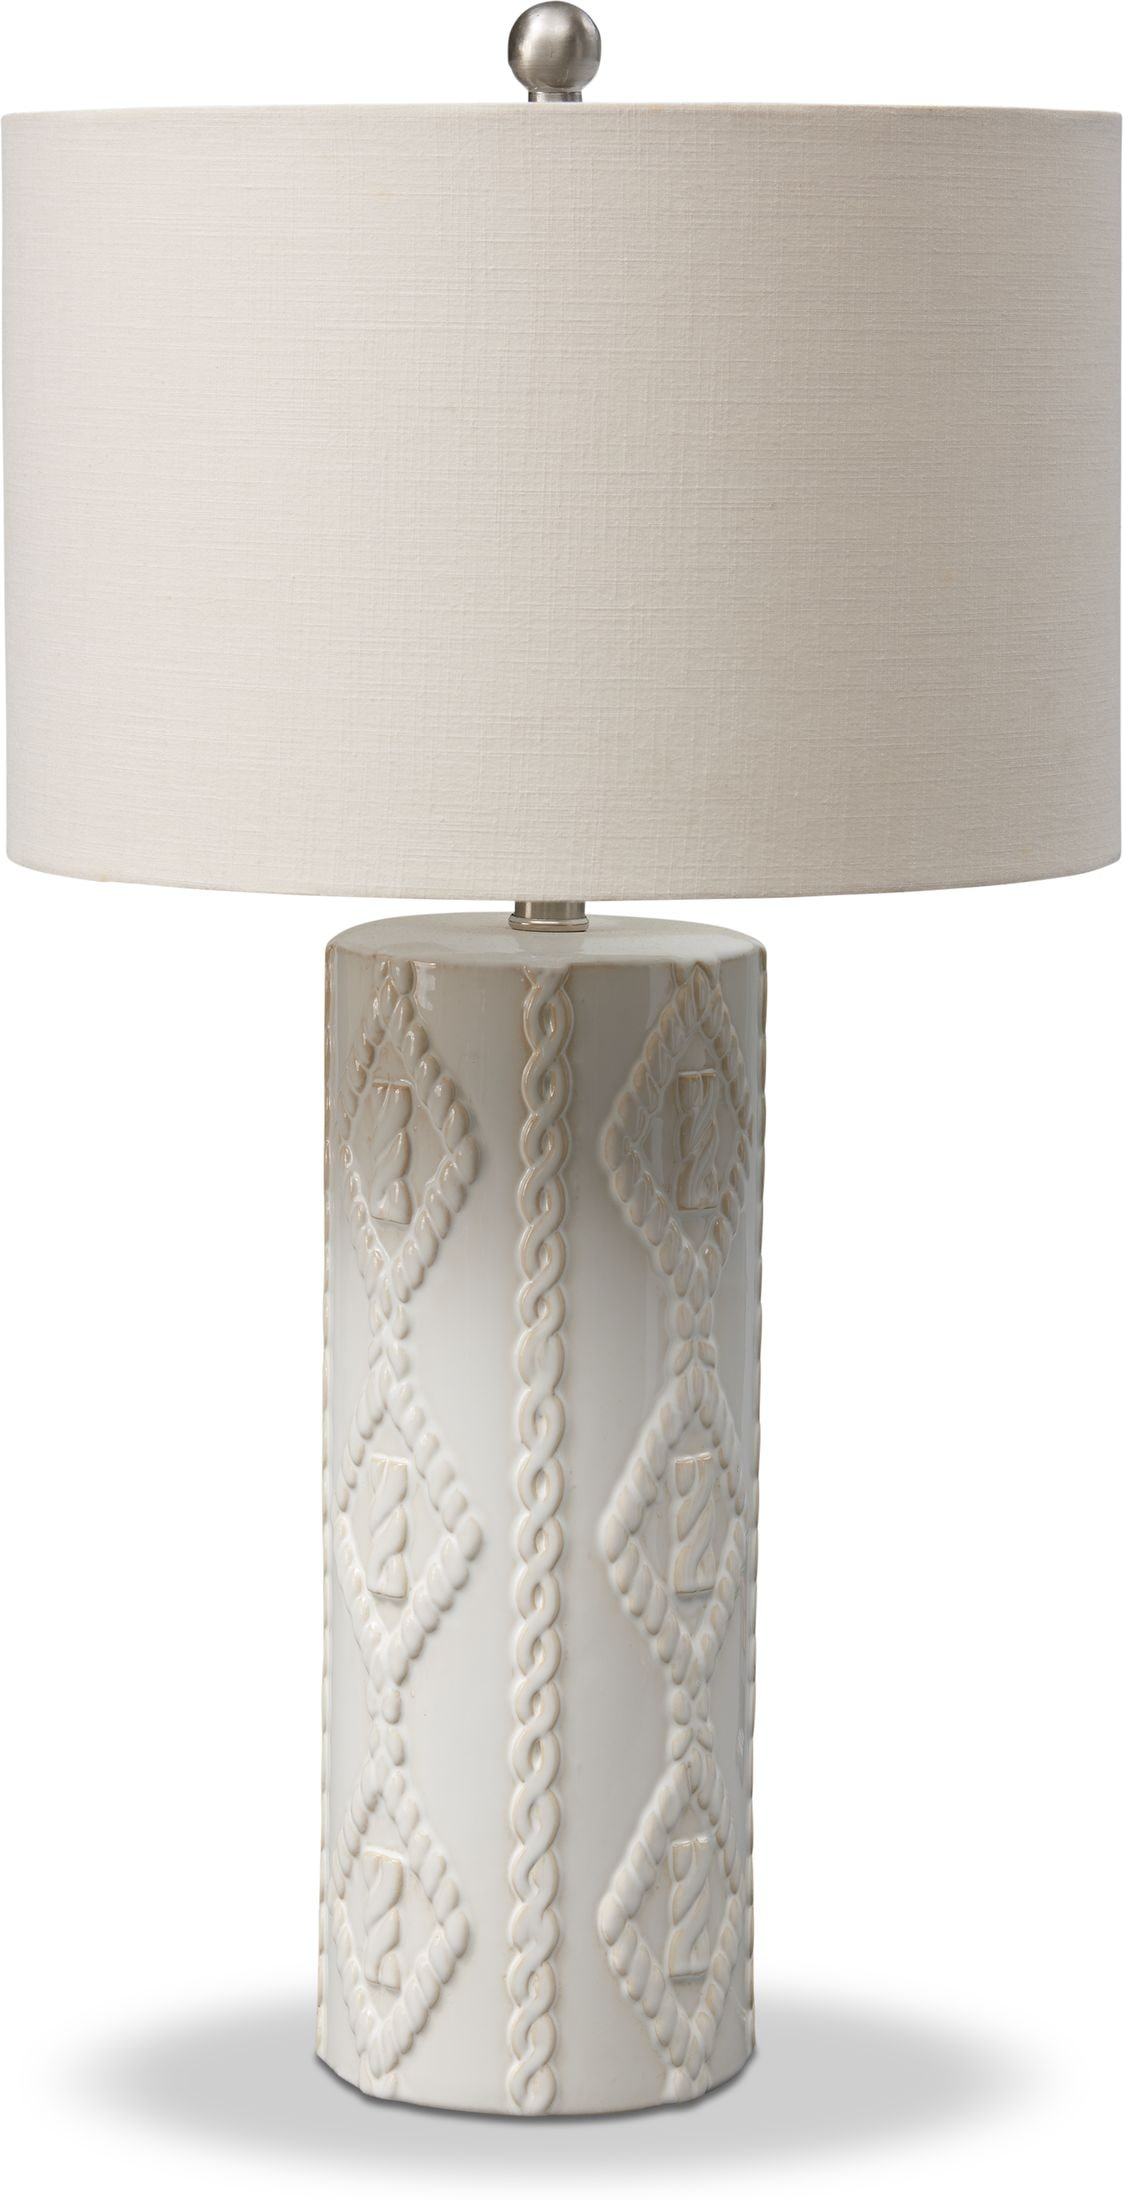 Home Accessories - Cable Knit Table Lamp